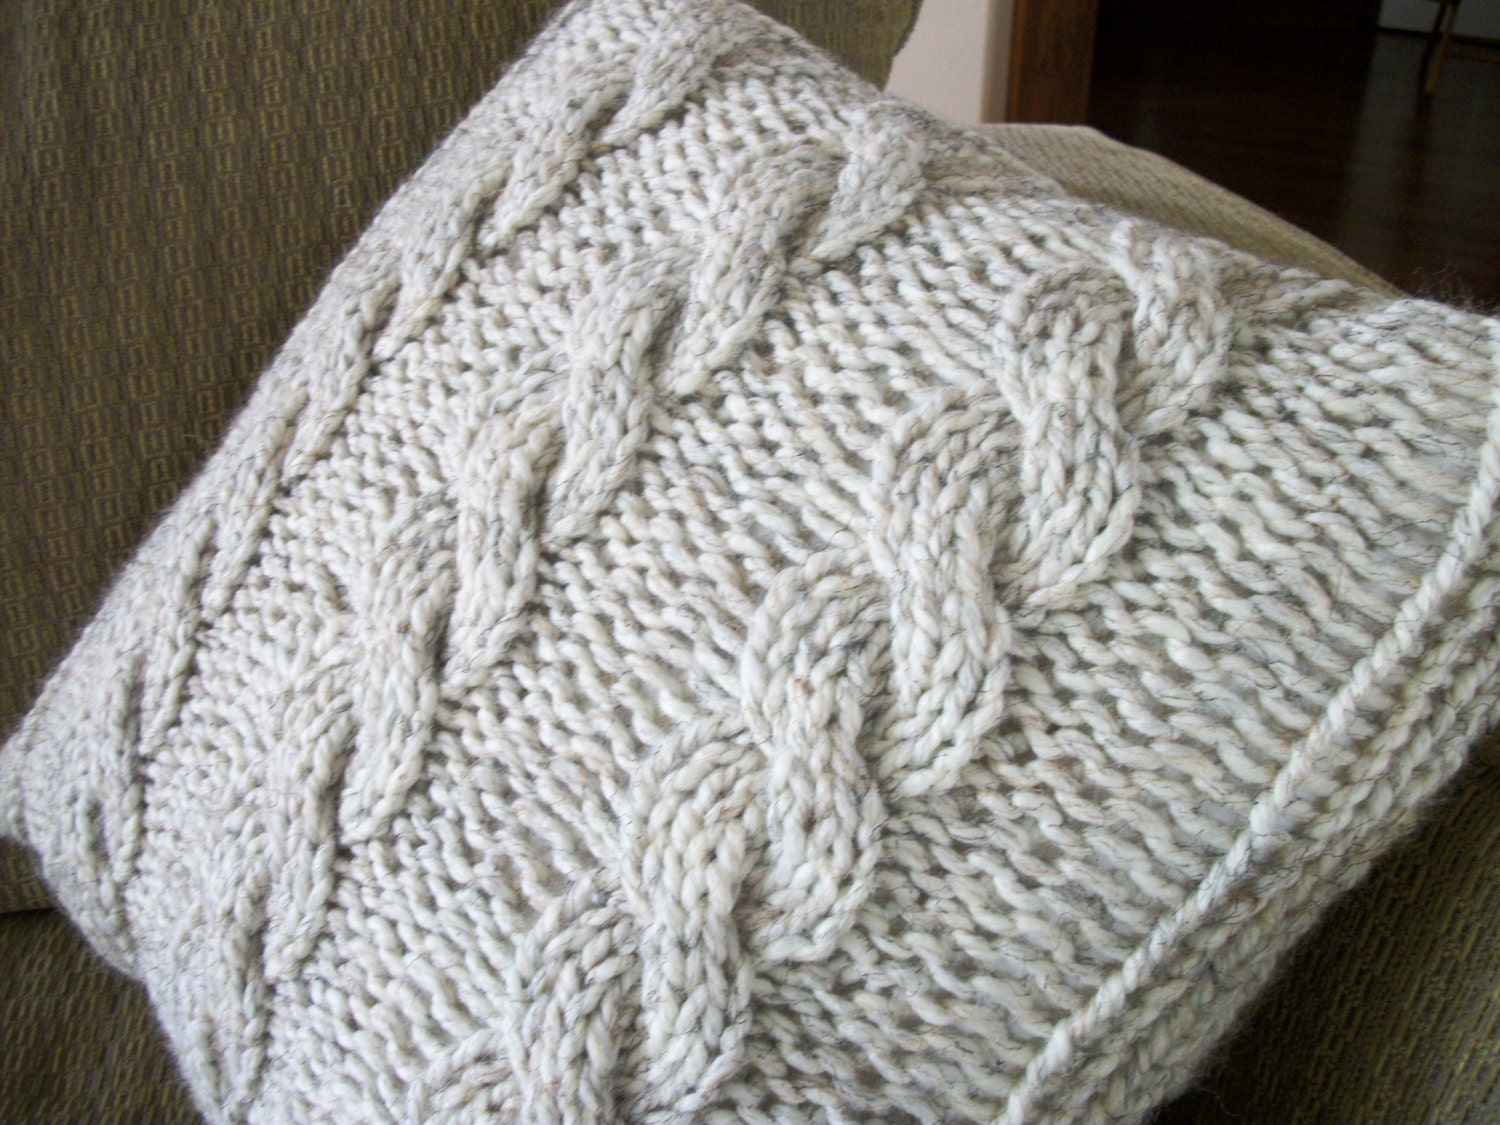 Chunky Knit Pillow Pattern : Cable knit chunky yarn accent pillow by MamaSherrysKnitShack